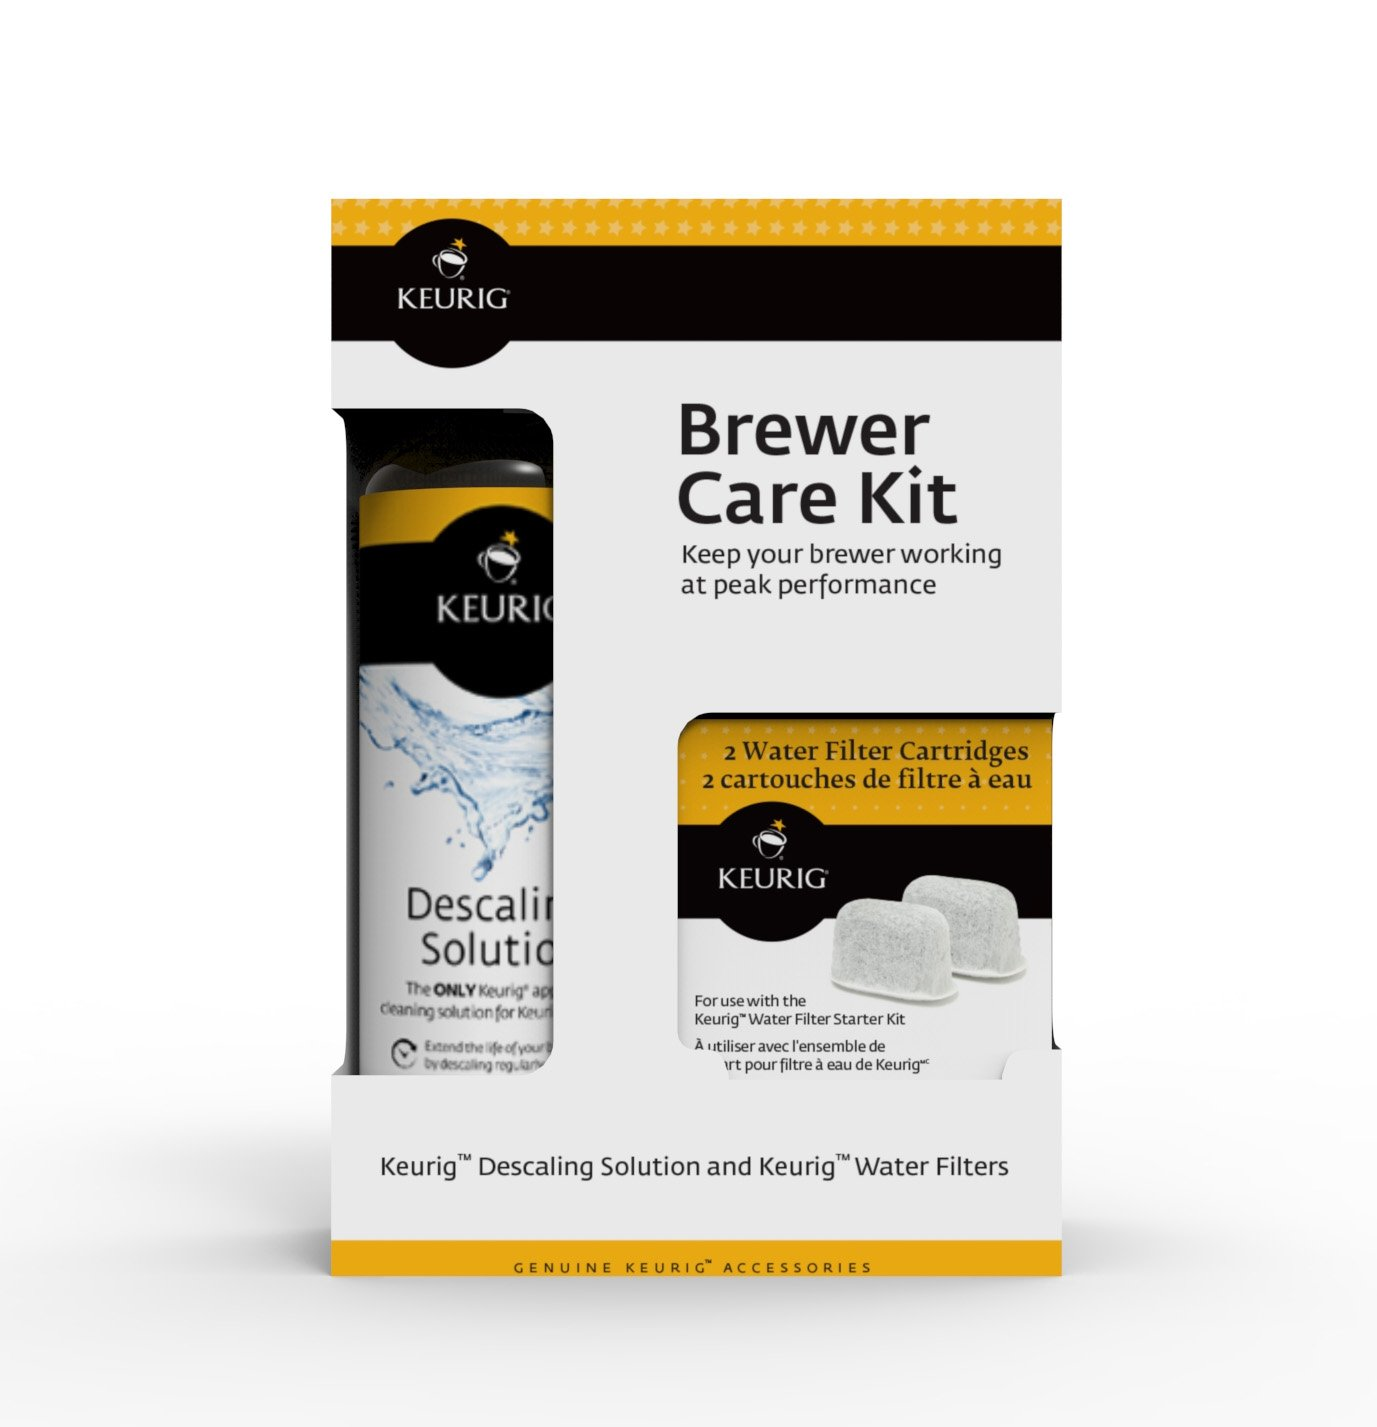 Keurig Brewer Care Kit with Descaling Solution and 2 Water Filter Cartridges, Compatible With All Keurig 2.0 and 1.0 K-Cup Pod Coffee Makers by Keurig (Image #3)